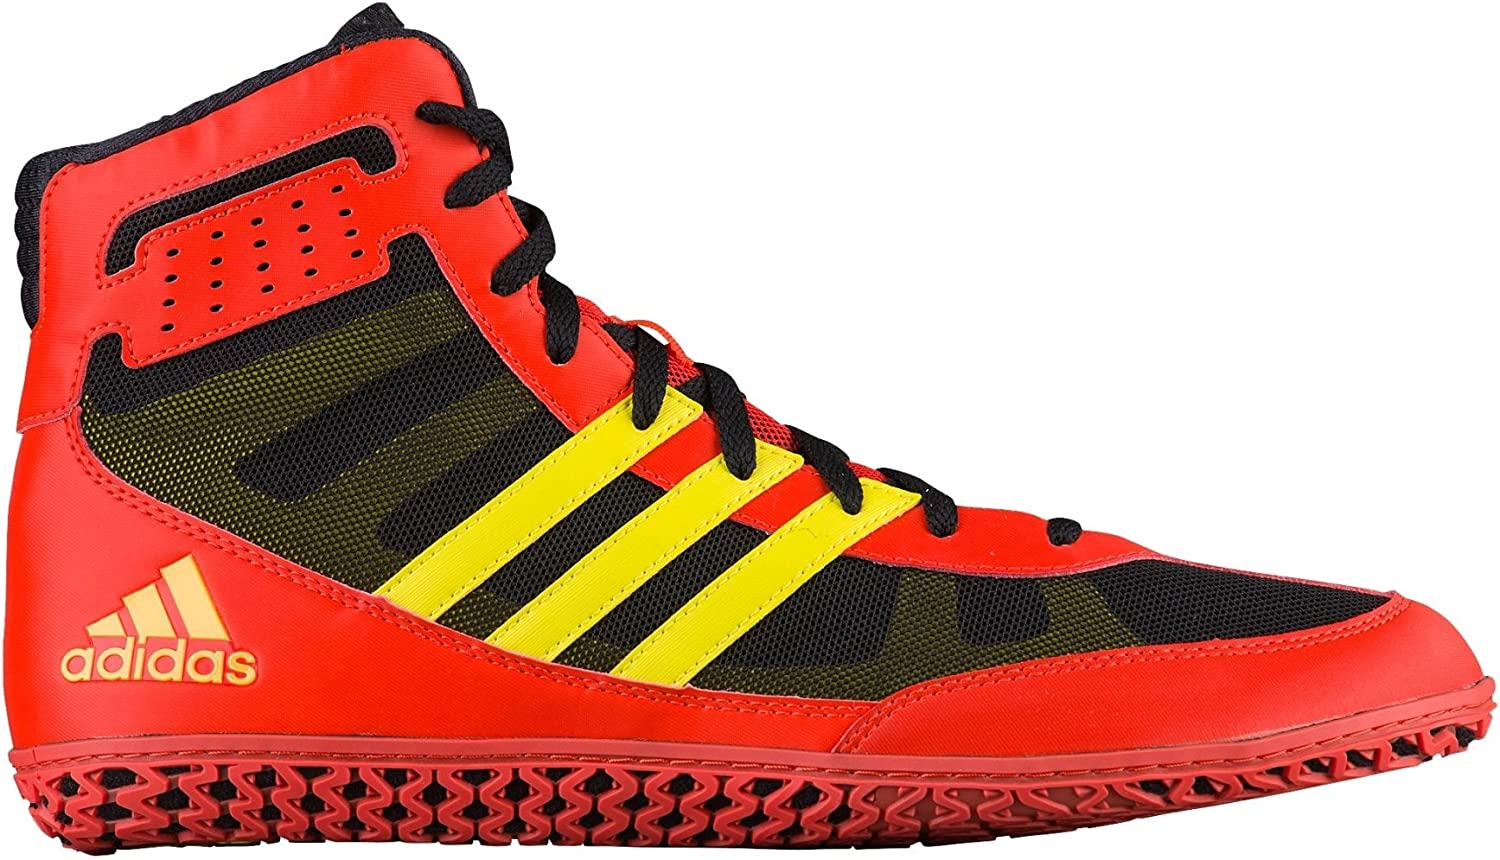 Adidas Mat Wizard Mens Wrestling shoes, Energy Red Yellow Black, Size 12.5